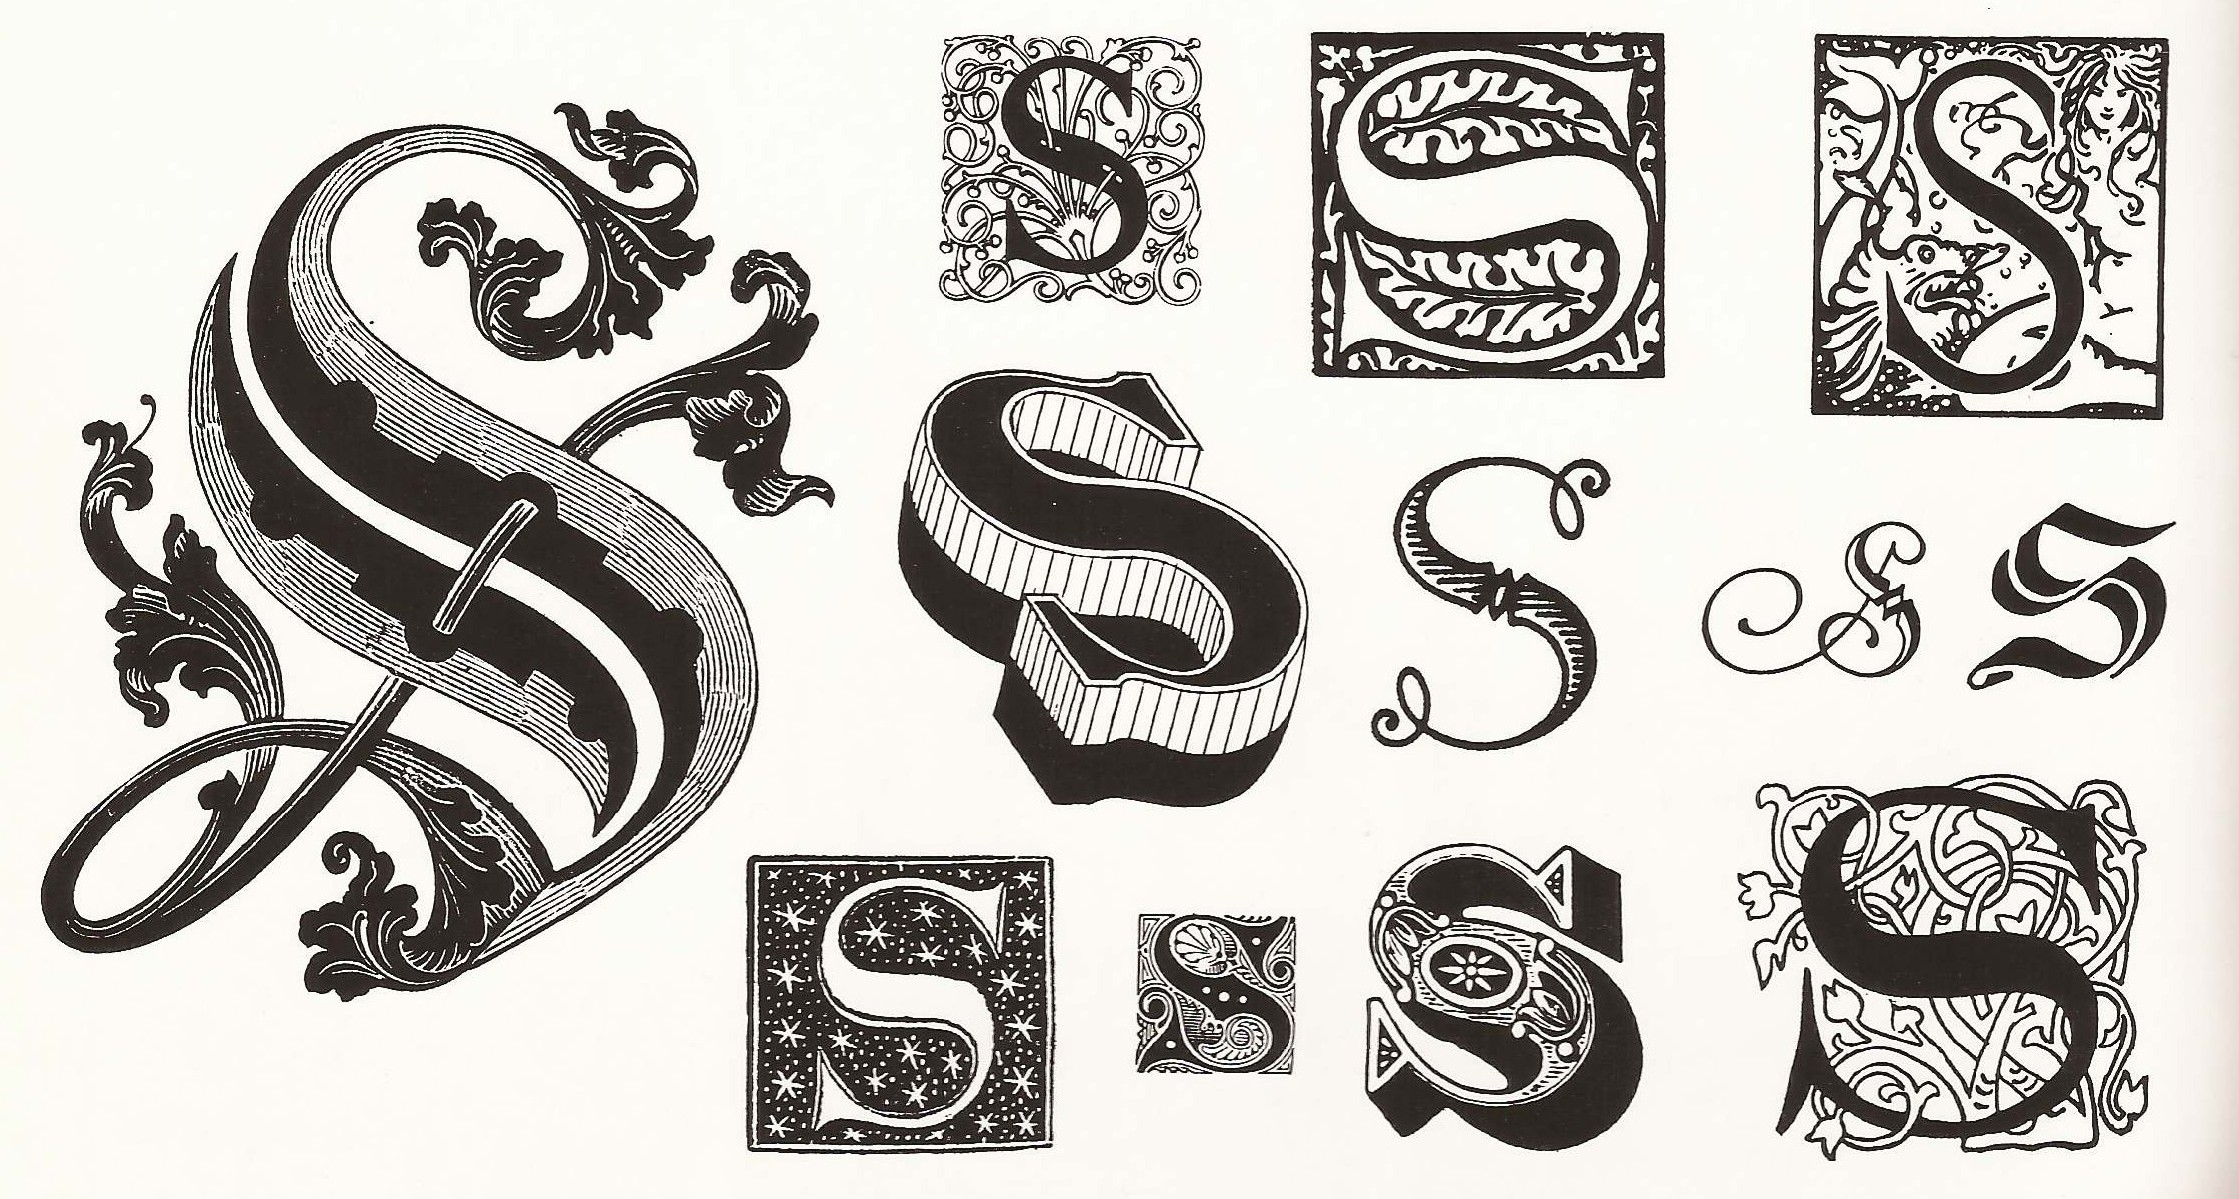 Decorative letter s clipart png transparent download Decorative letter s clipart - ClipartFest png transparent download